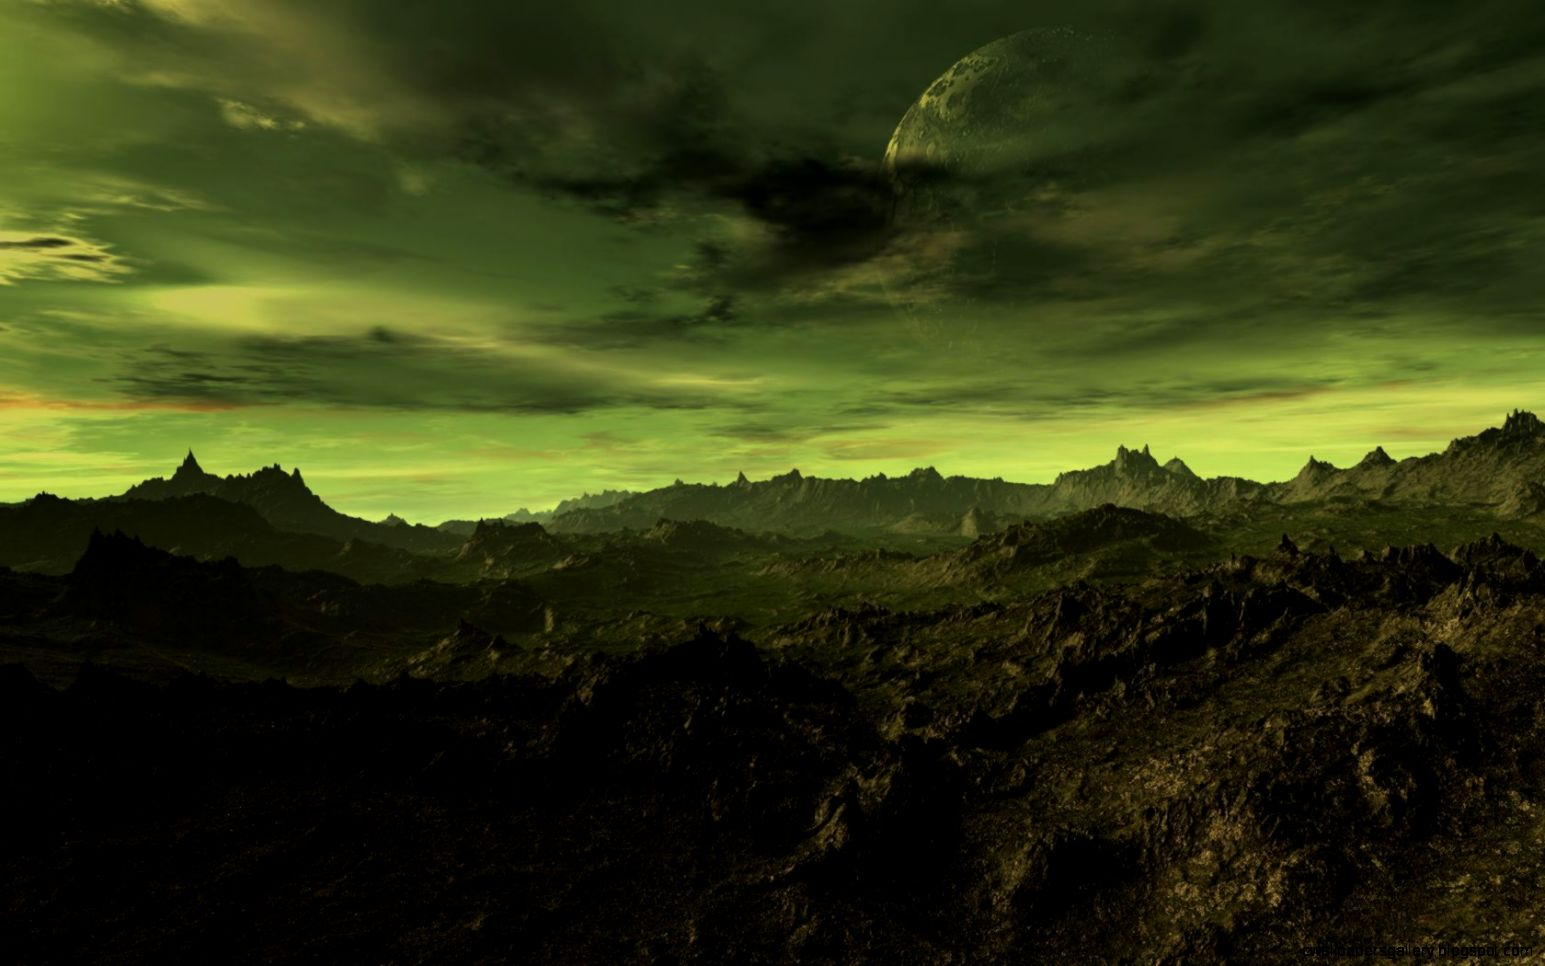 Alien Planet Wallpapers For Desktop Background Earth City Cool